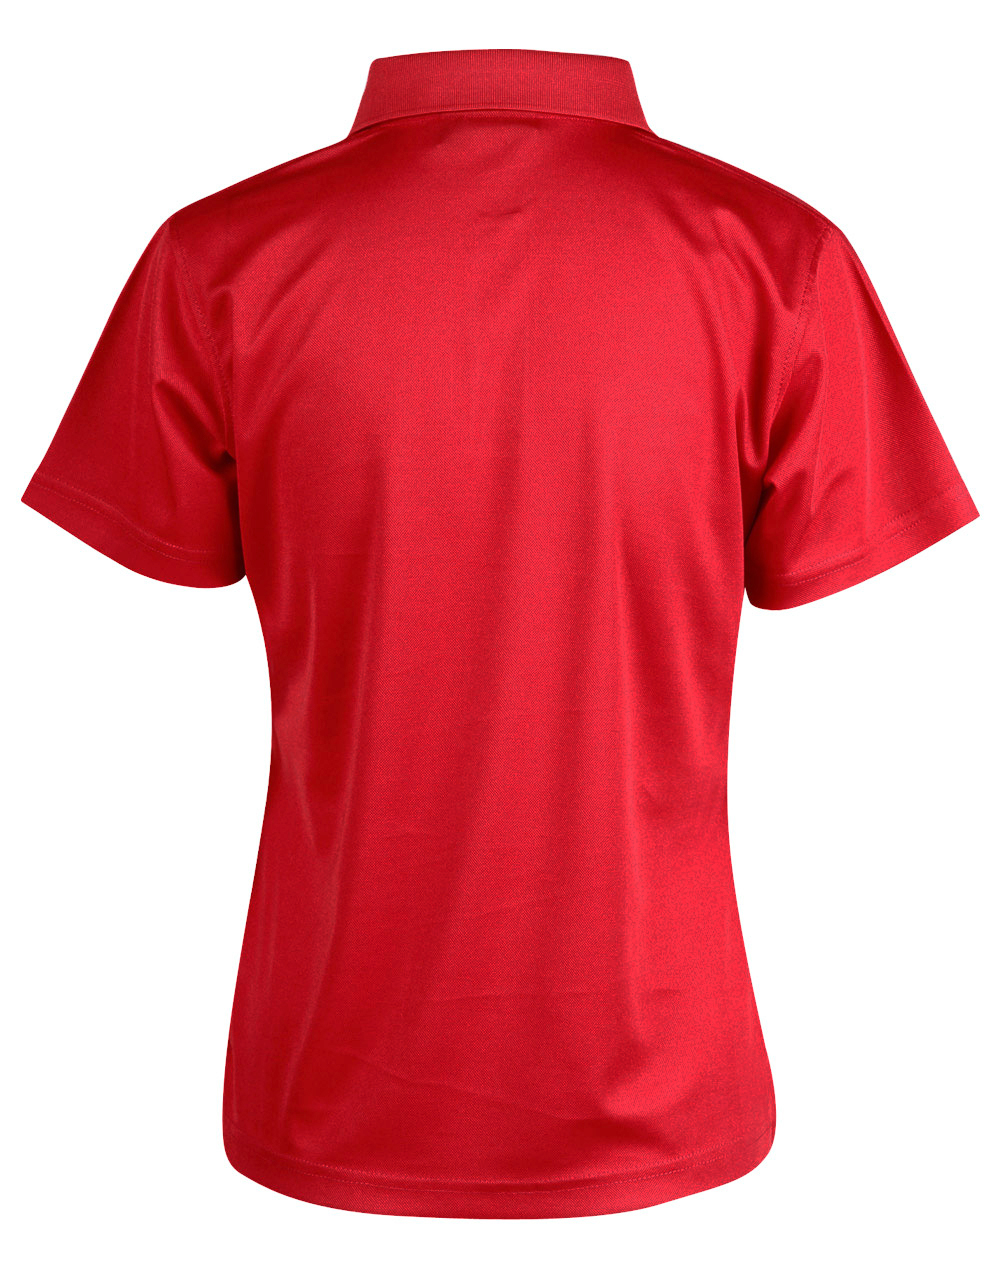 https://s3-ap-southeast-1.amazonaws.com/ws-imgs/POLOSHIRTS/PS82_Red_Back.jpg